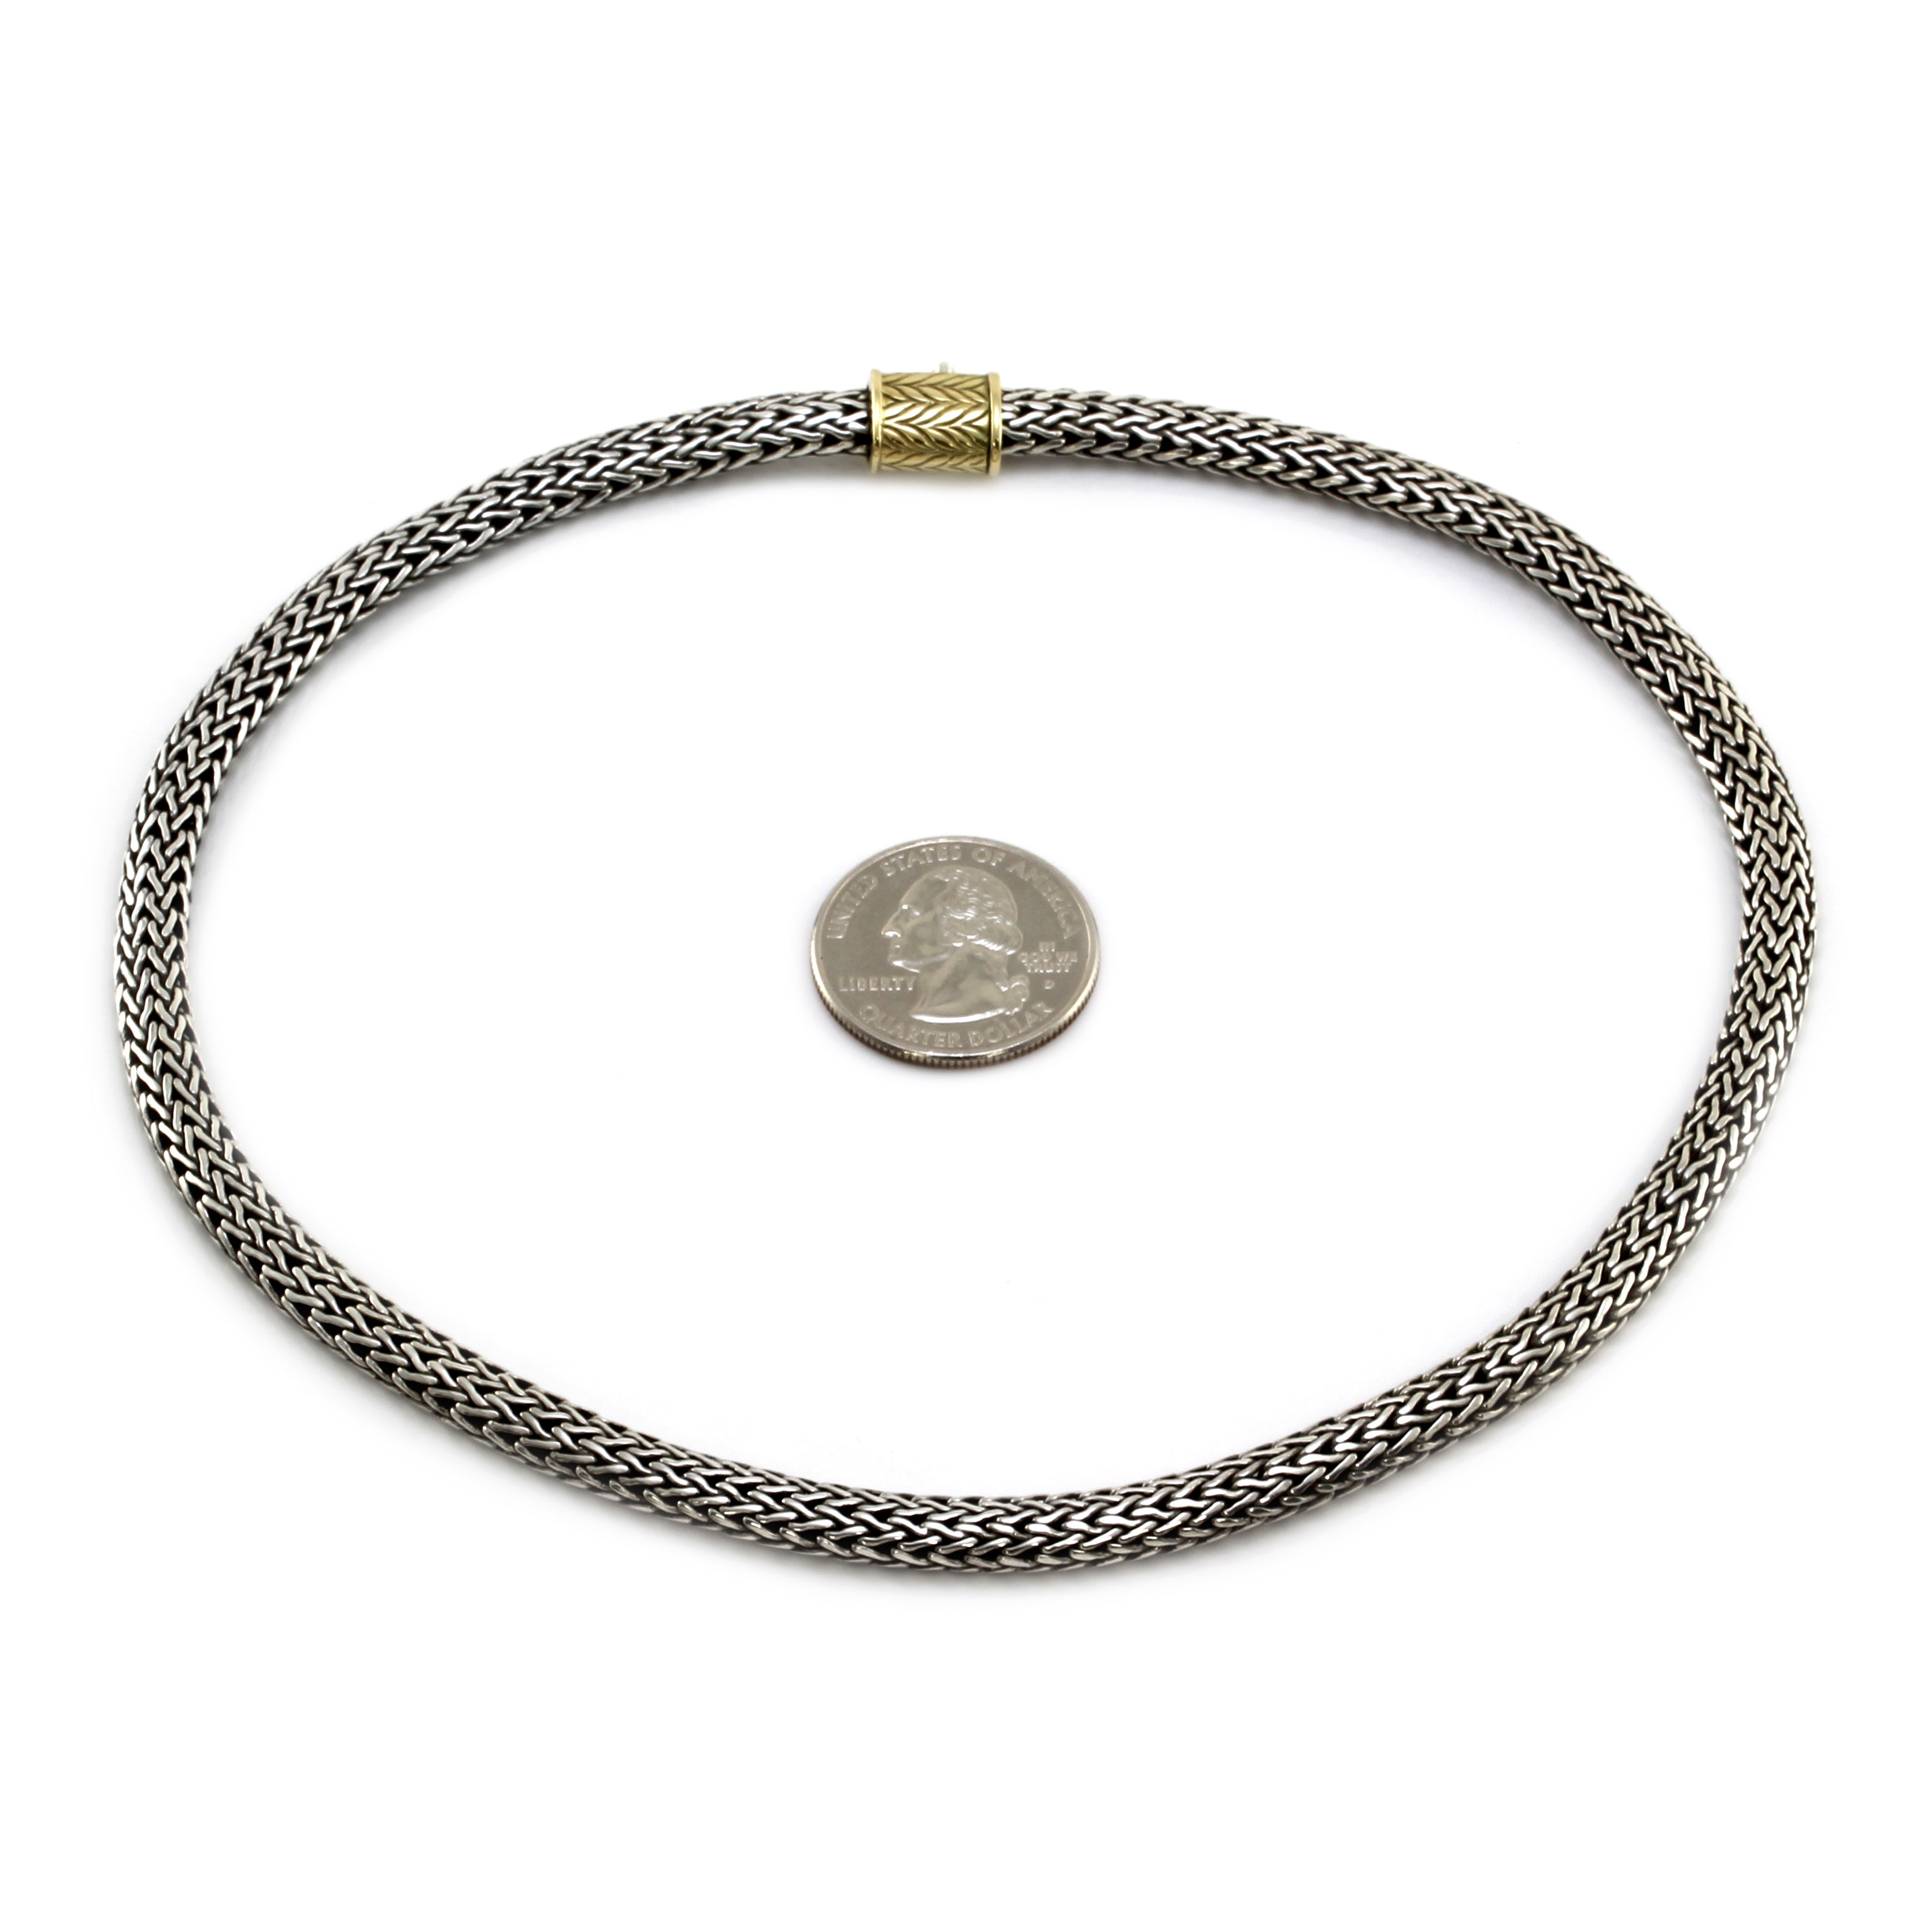 John Hardy Classic Necklace in Silver and Gold